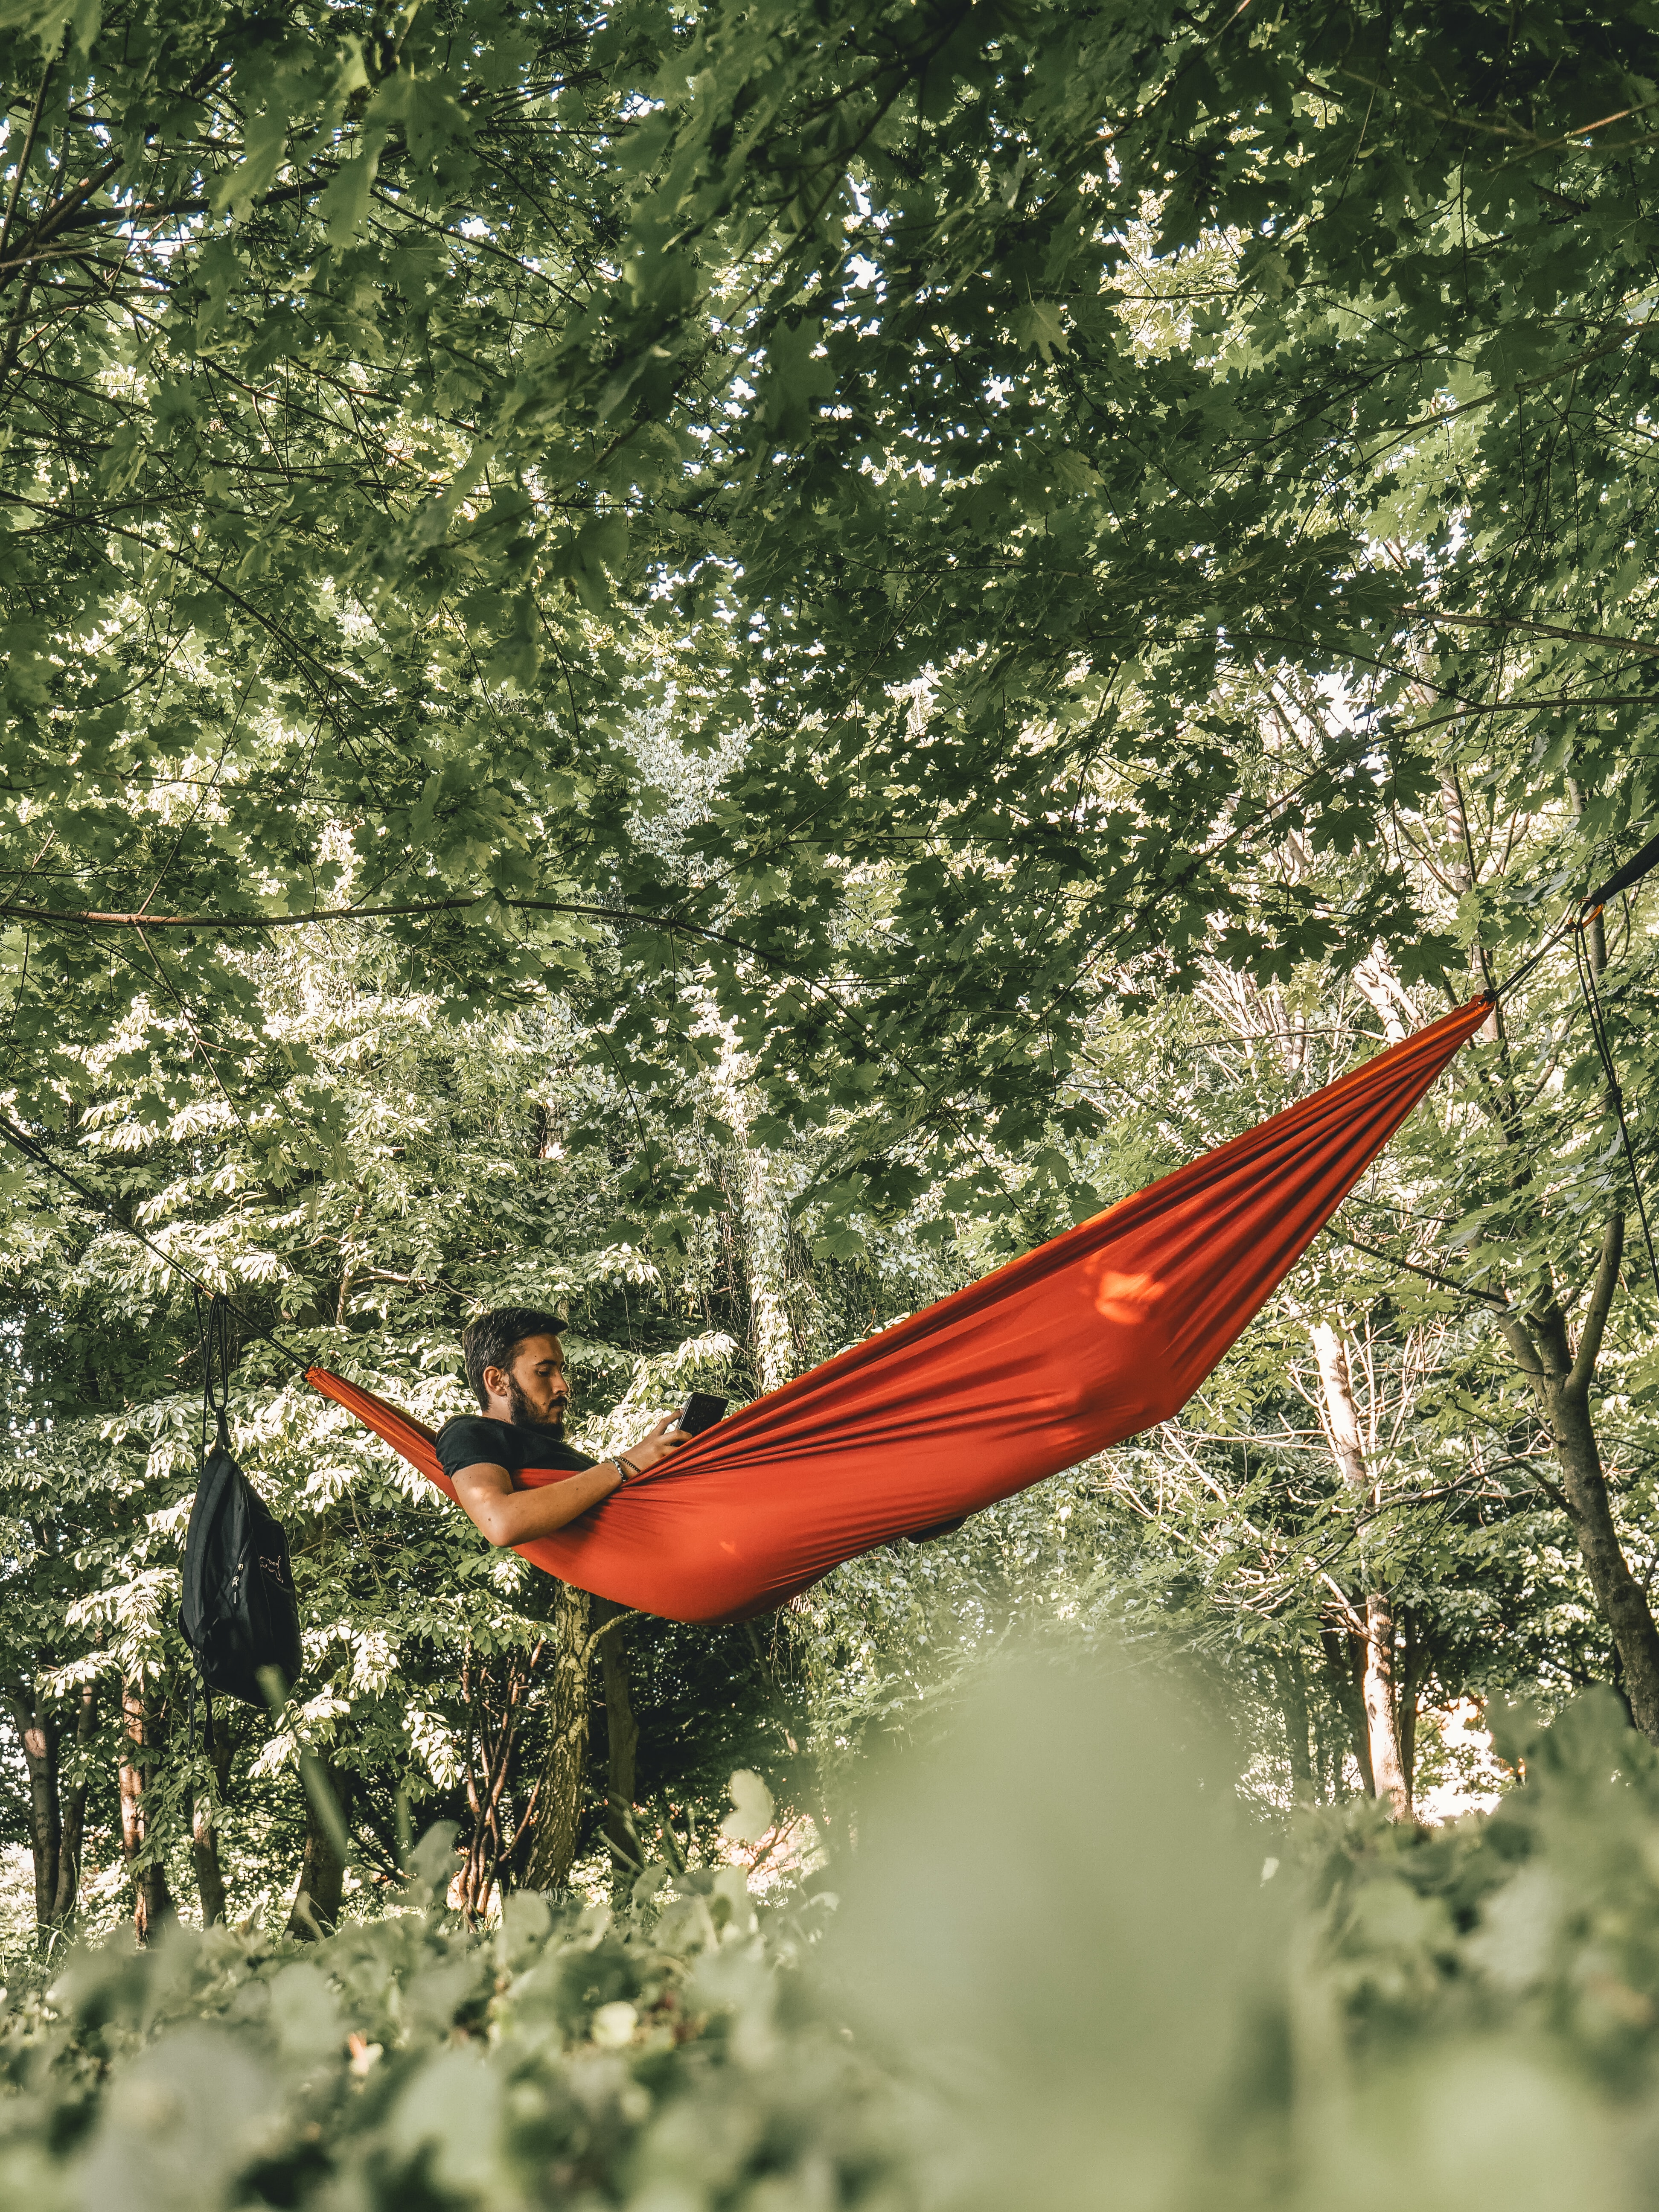 man on red hammock surrounded by trees during daytime